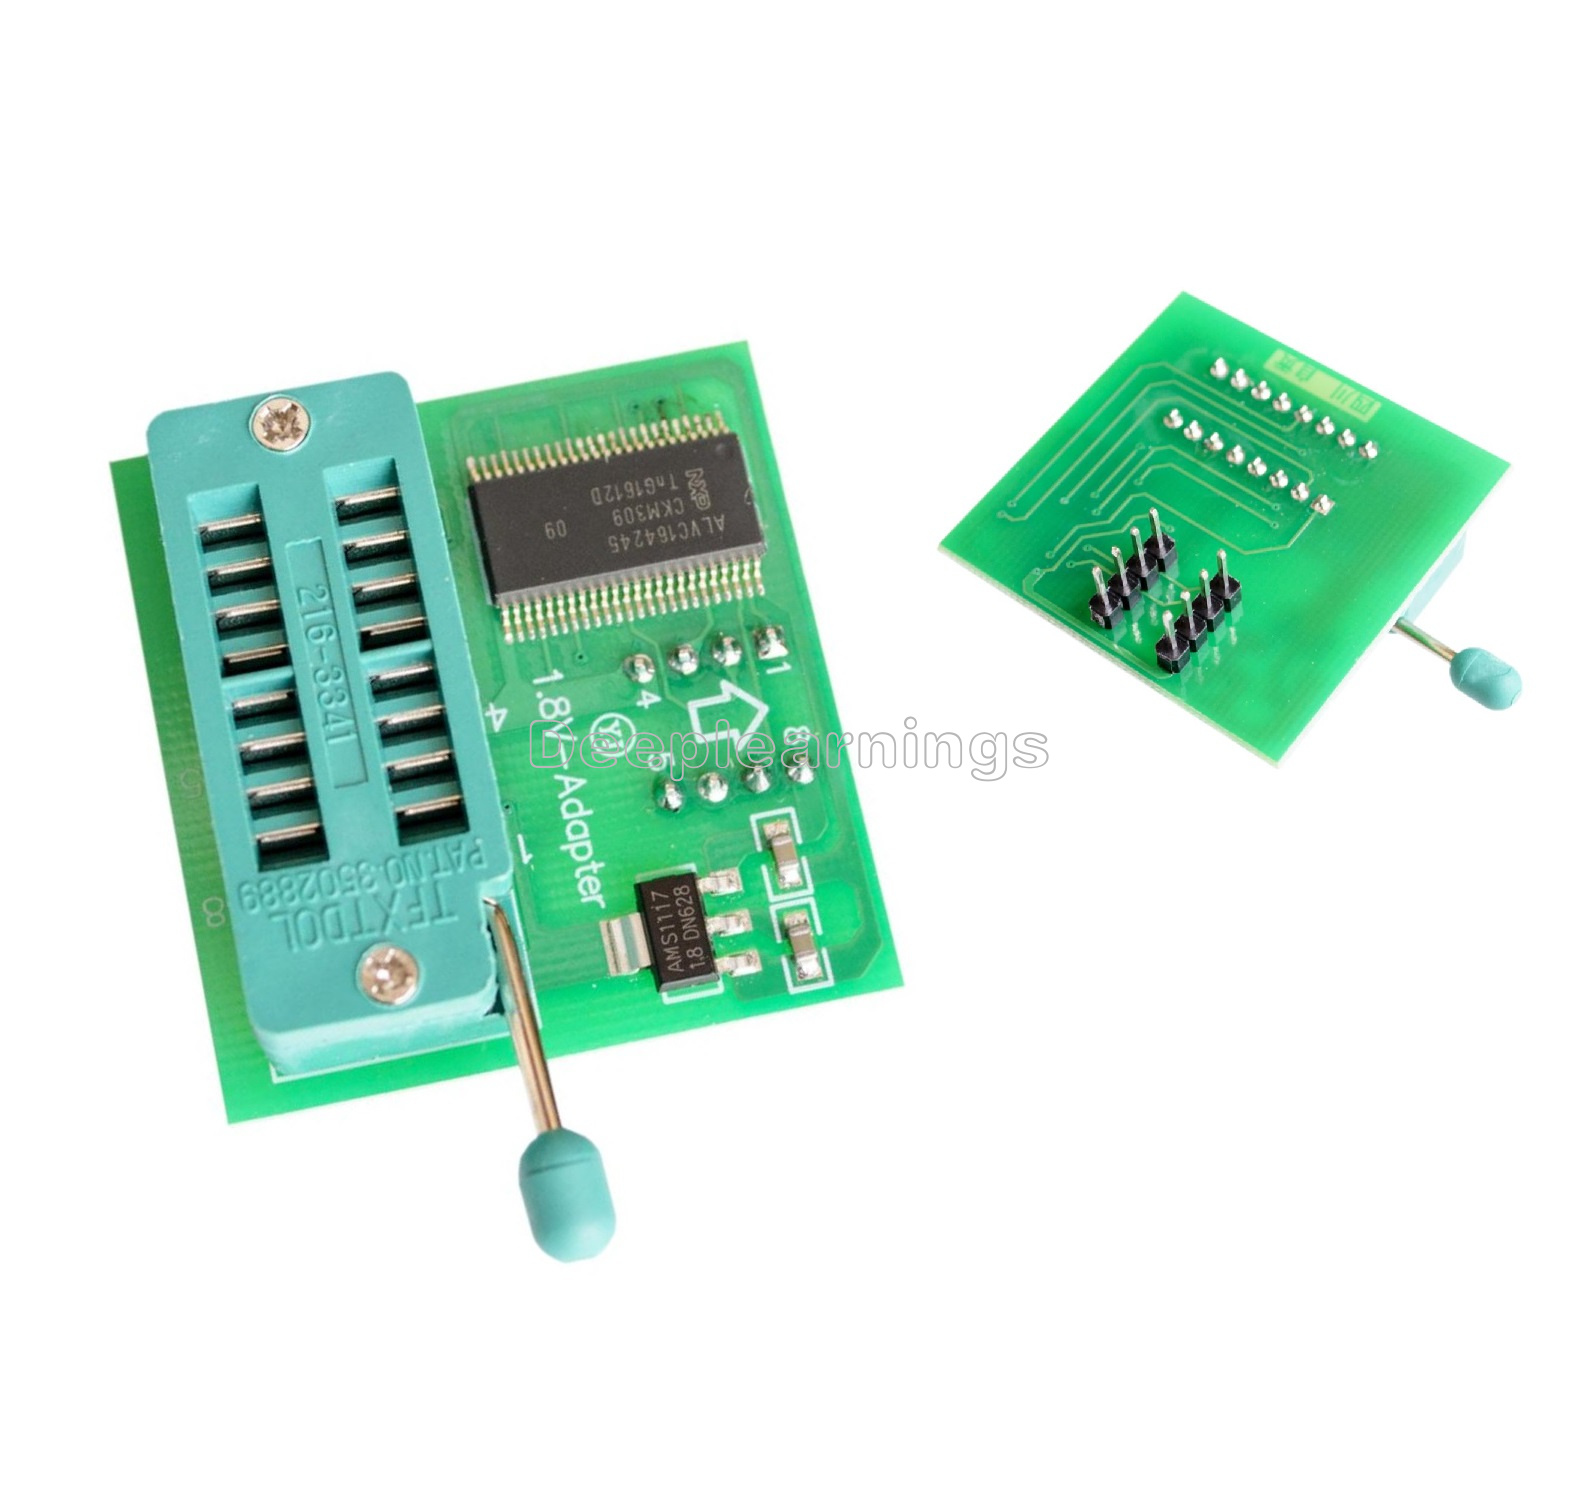 Details about 1 8V Adapter TL866II Programmer USB EPROM FLASH BIOS 6  Adapters Socket Extractor